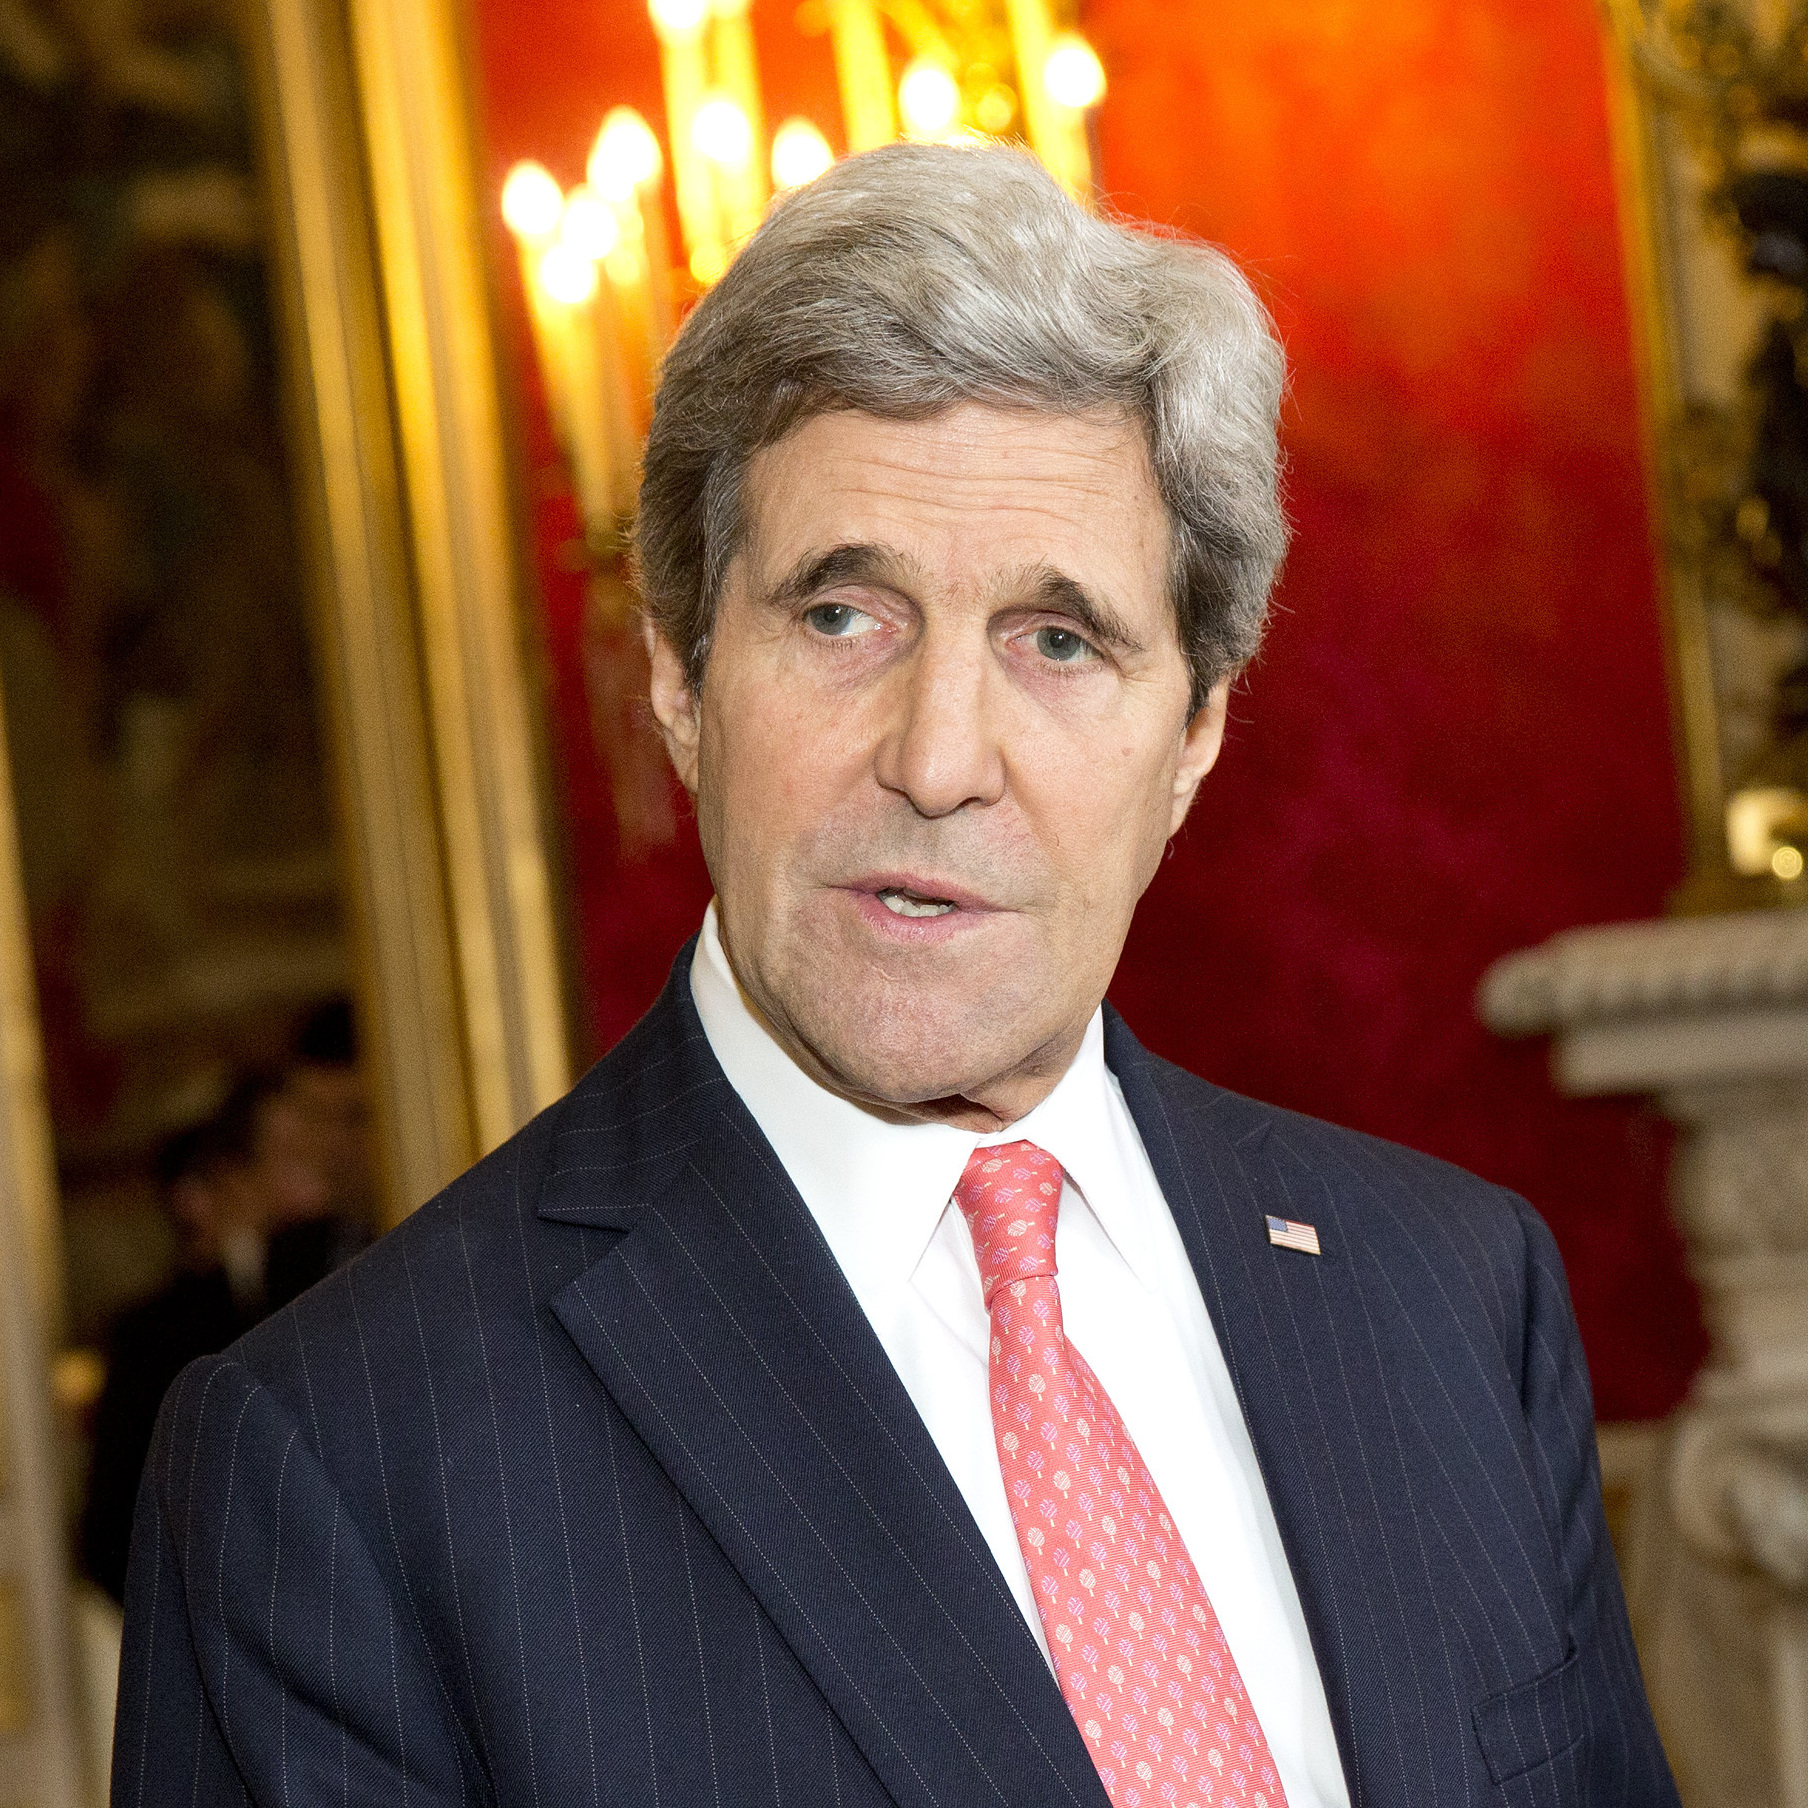 U.S. Secretary of State John Kerry, left, reiterated his hope for negotiations between the government and protesters during a statement on the violence in Ukraine before a meeting with French Foreign Minister Laurent Fabius on Wednesday in Paris.